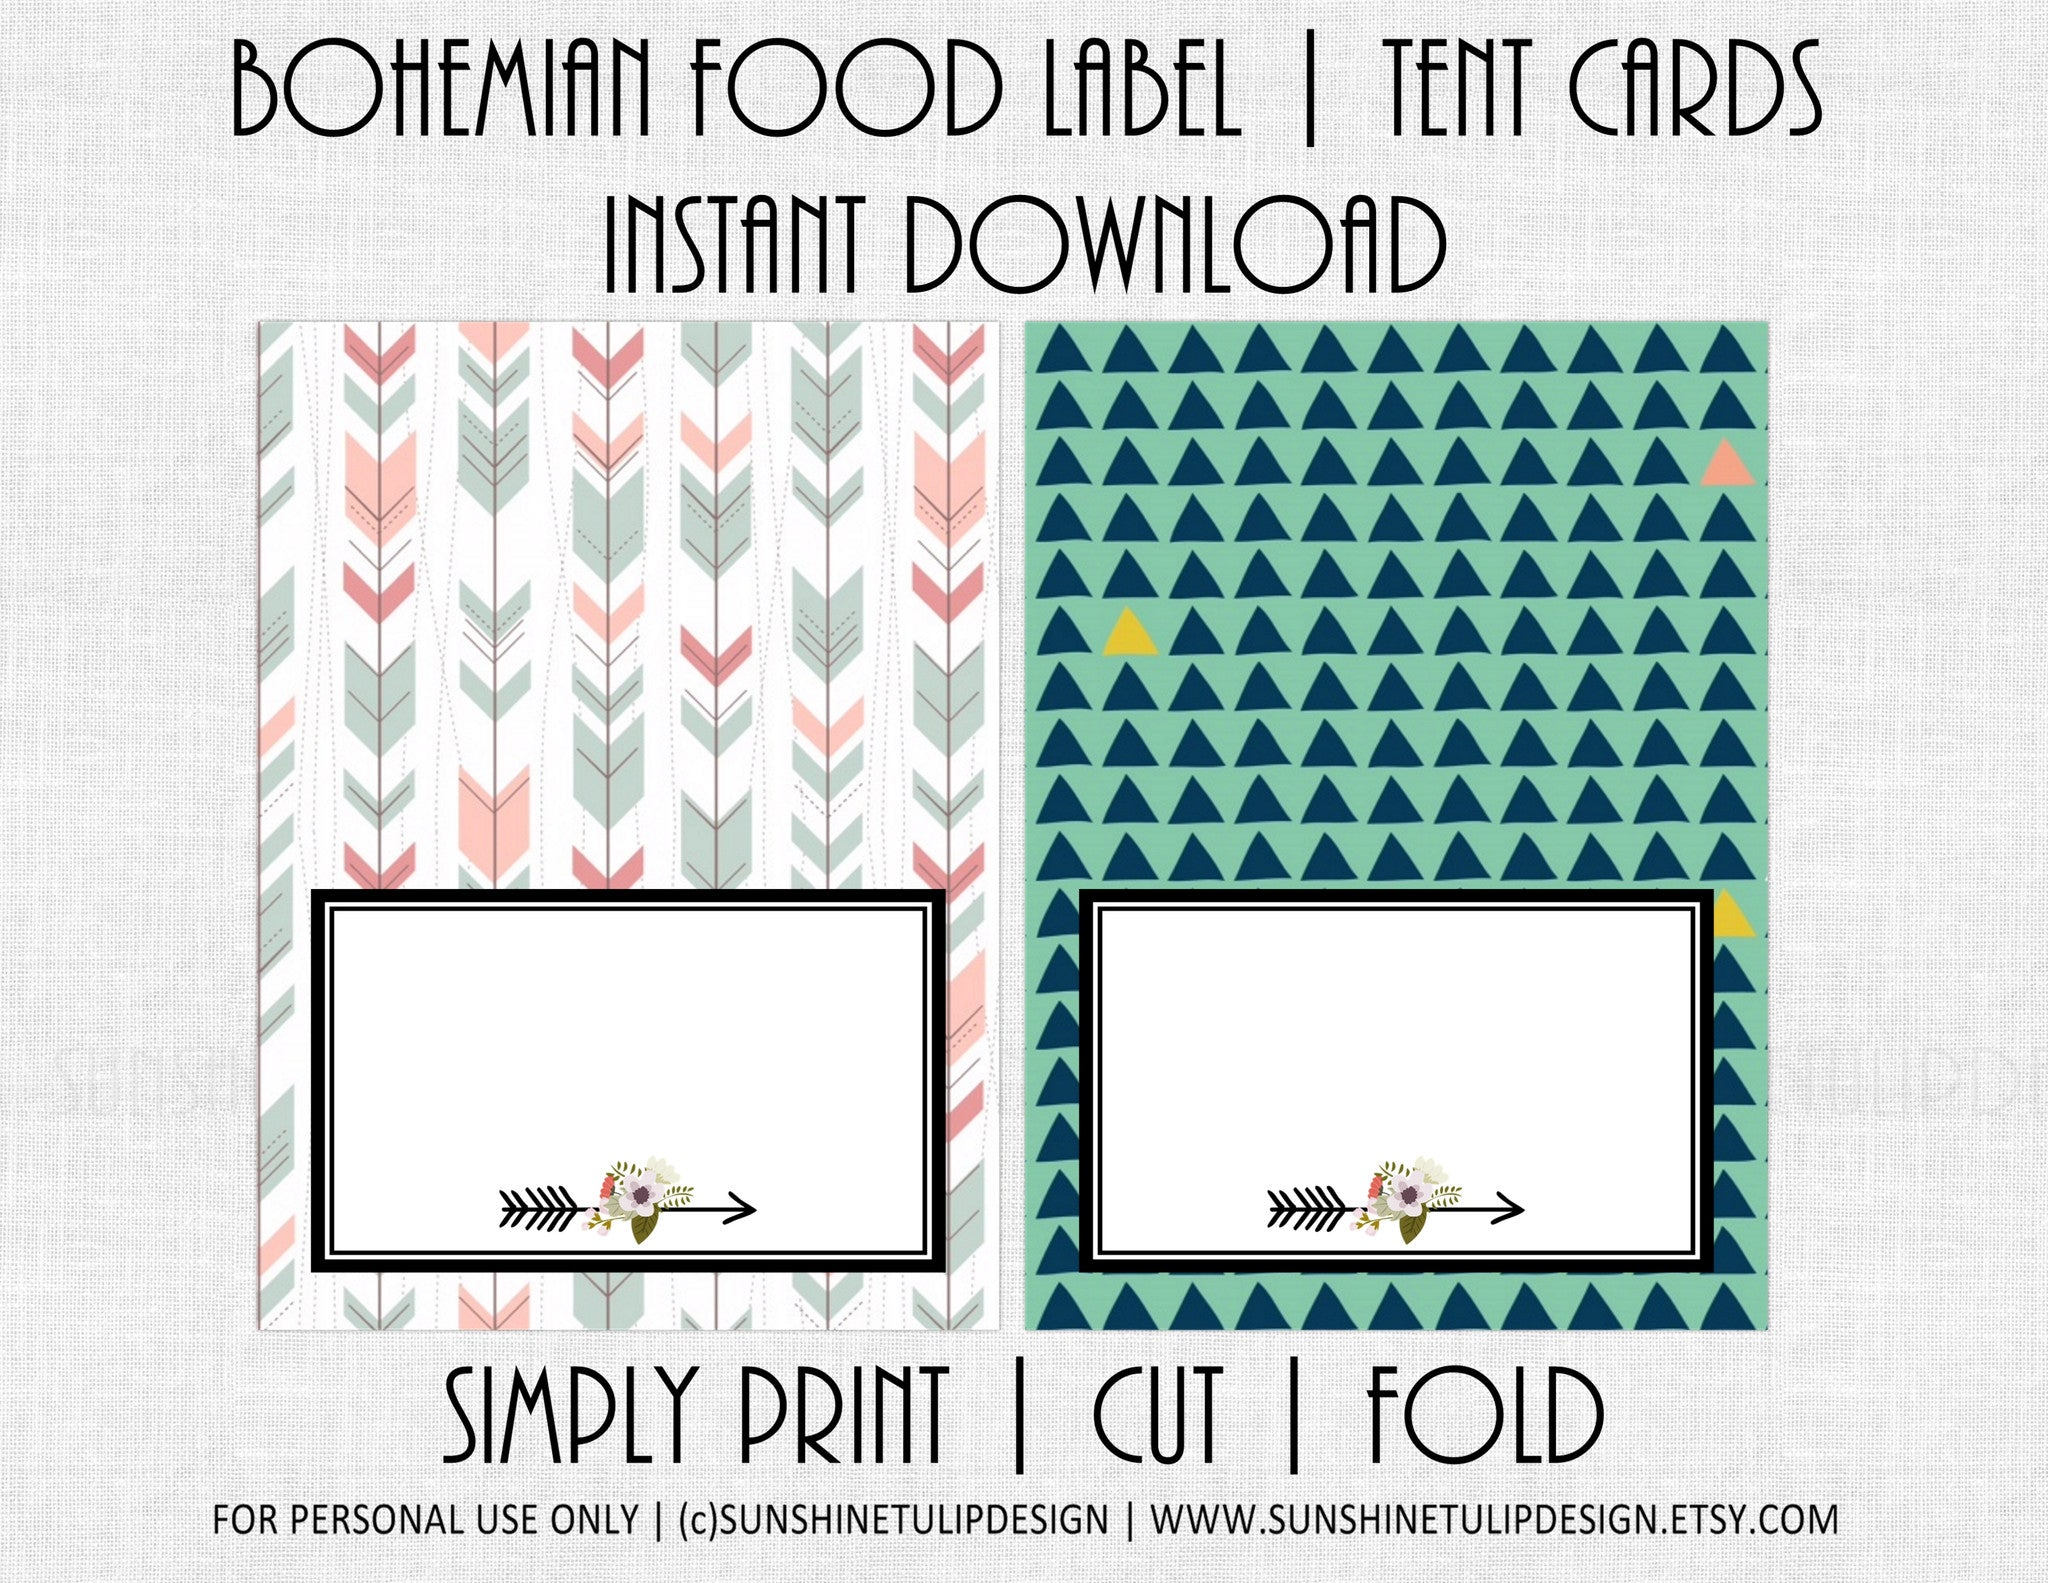 photo regarding Printable Tent Cards called Printable Bohemian Celebration Foods Label Tent Playing cards as a result of SUNSHINETULIPDESIGN